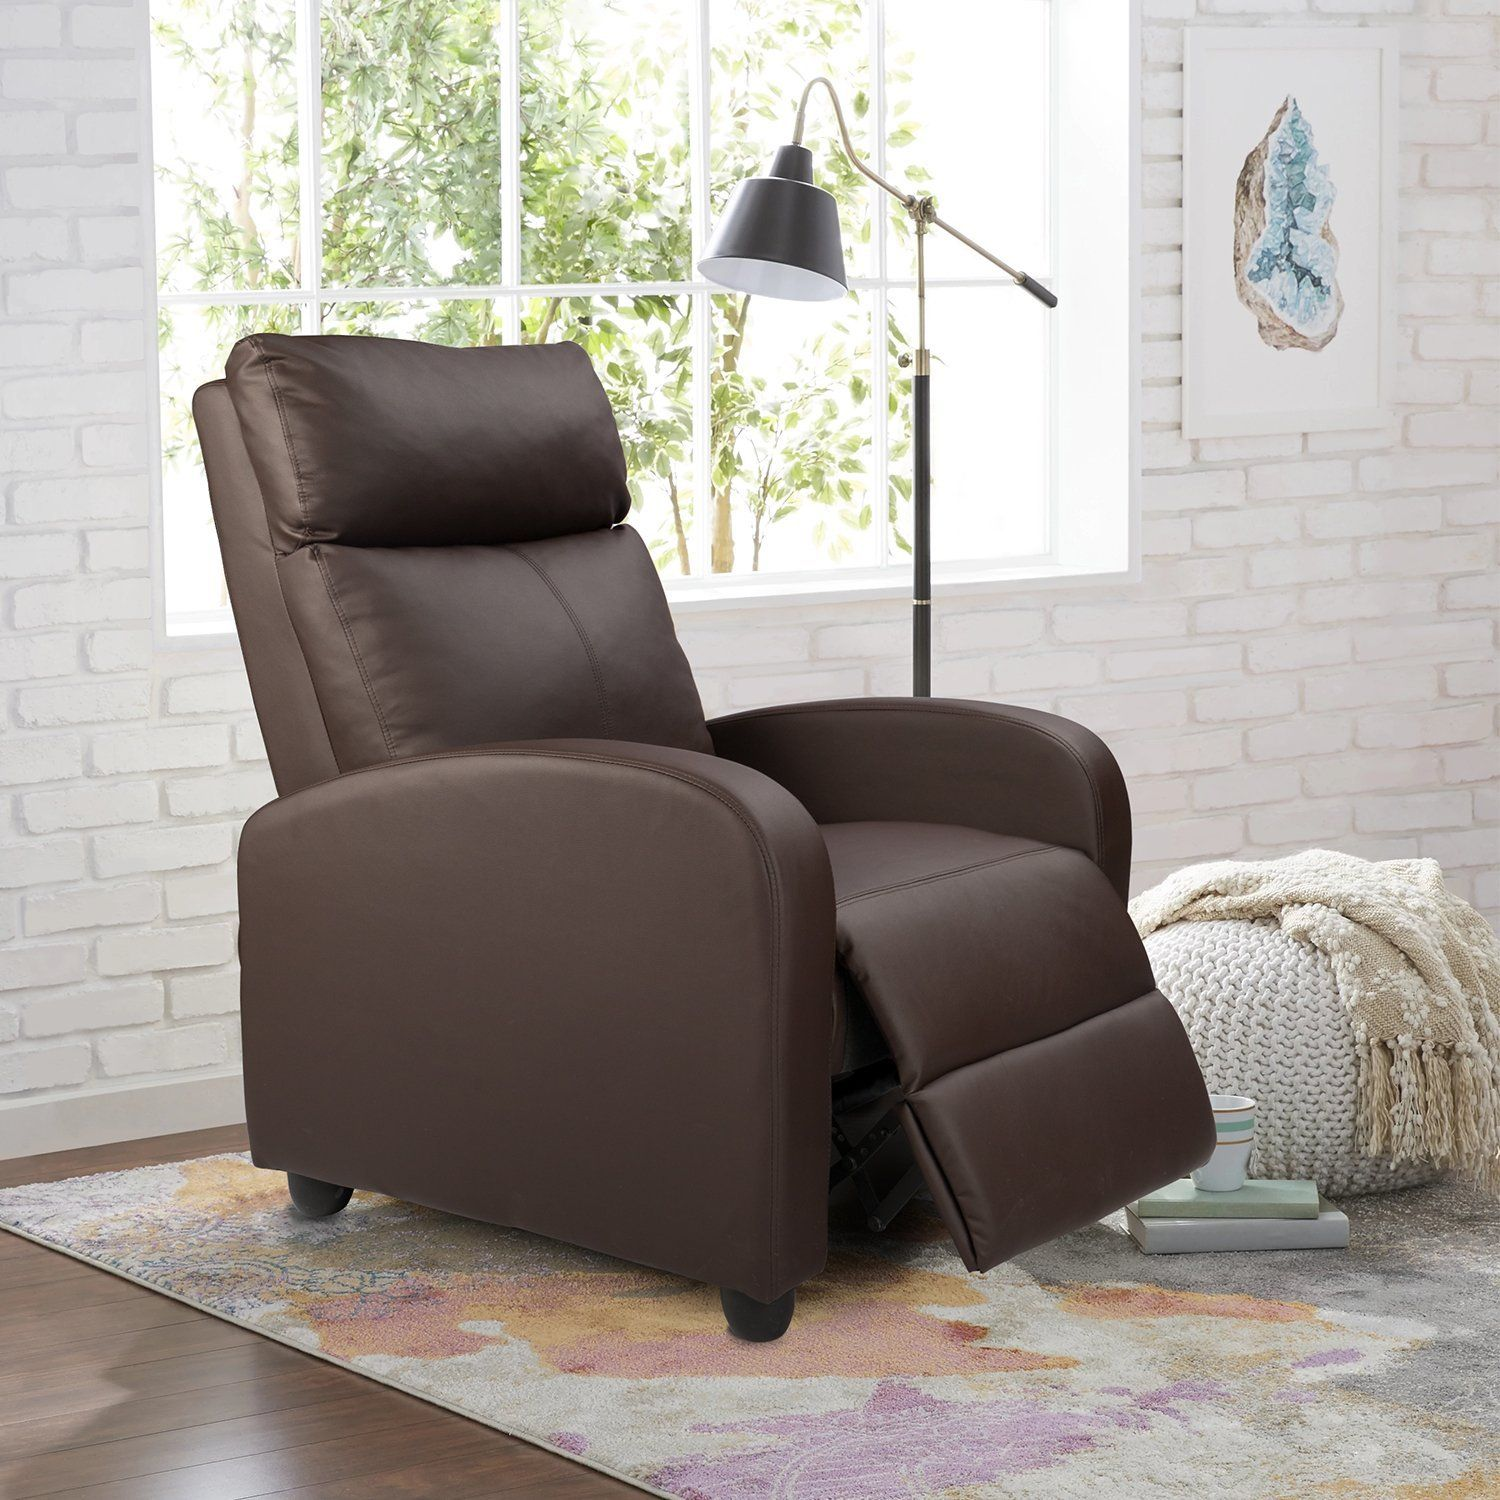 Accent Chairs To Go With Brown Leather Sofa 30 Best Cozy Chairs For Living Rooms Most Comfortable Chairs For